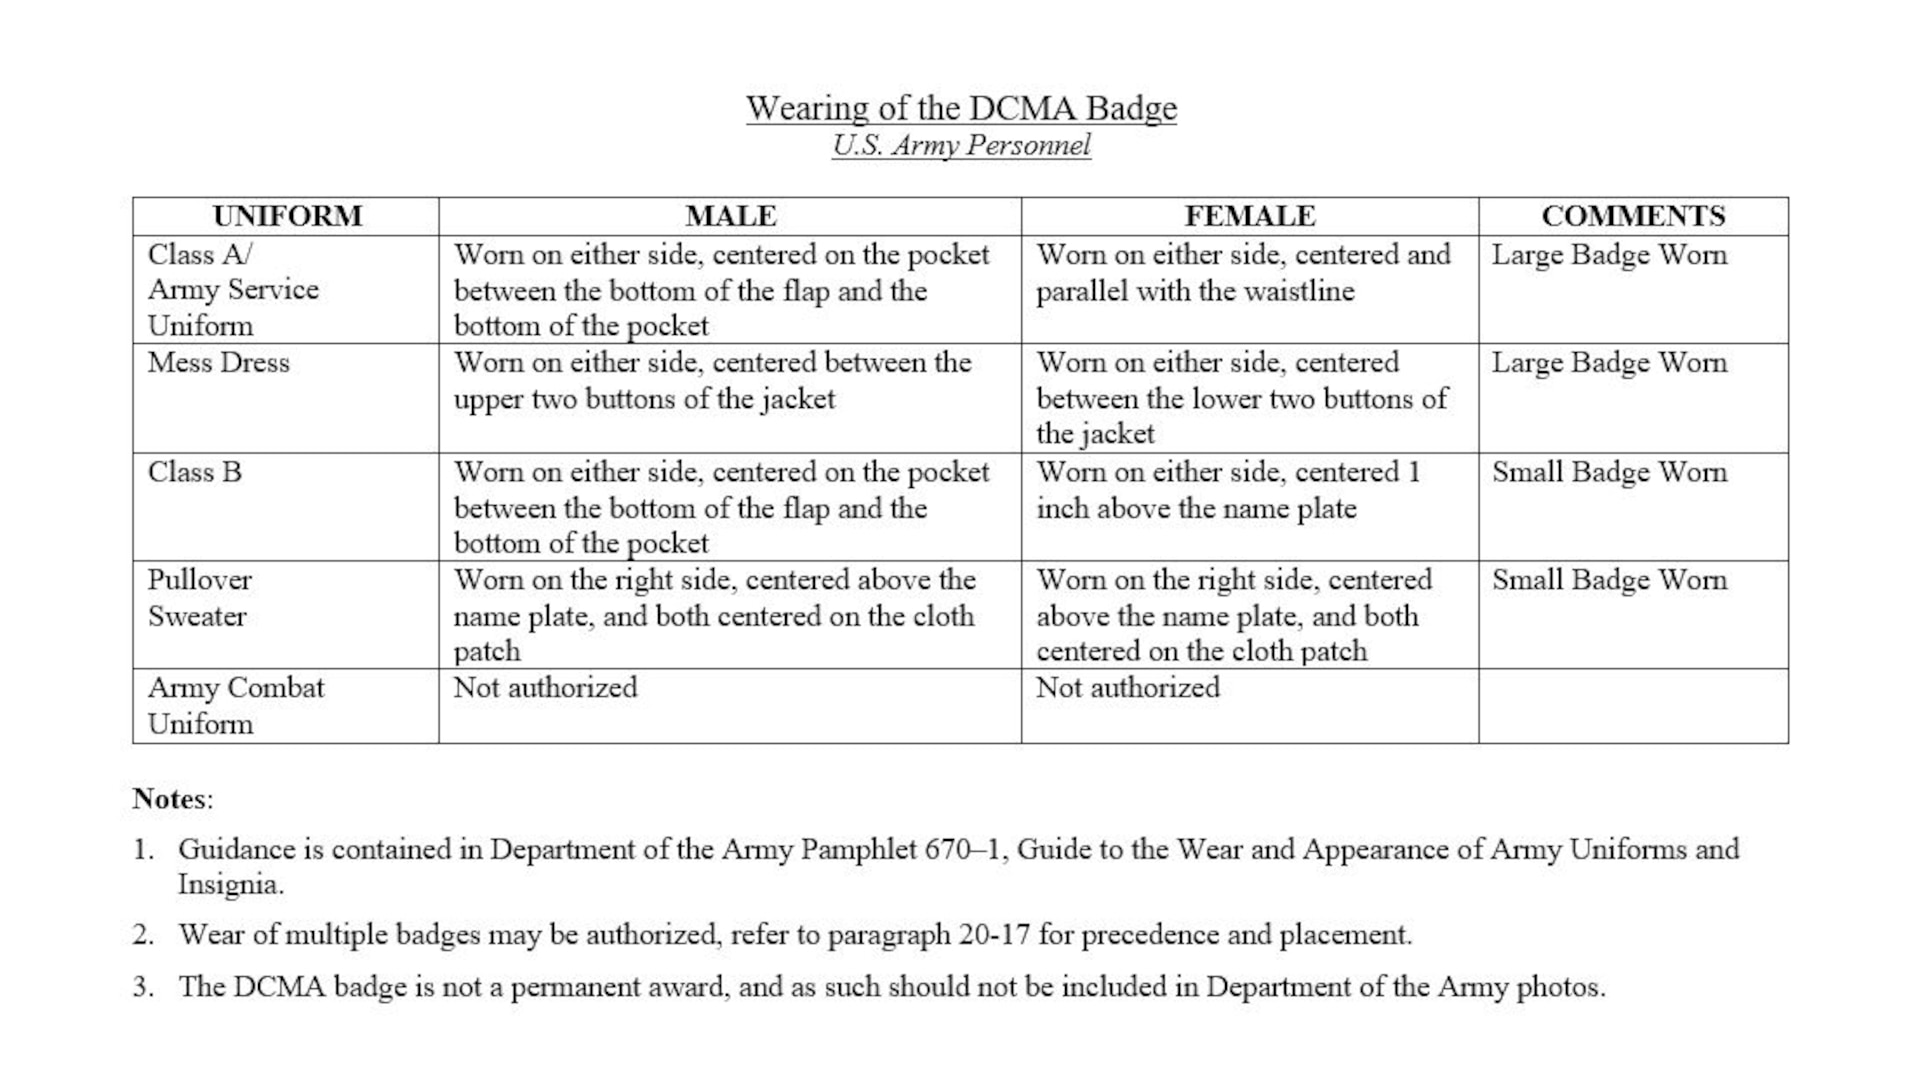 U.S. Army personnel assigned to the Defense Contract Management Agency are authorized to wear the approved agency badge in accordance with Department of the Army Pamphlet 670-1, Guide to the Wear and Appearance of Army Uniforms and Insignia. (DCMA graphic).